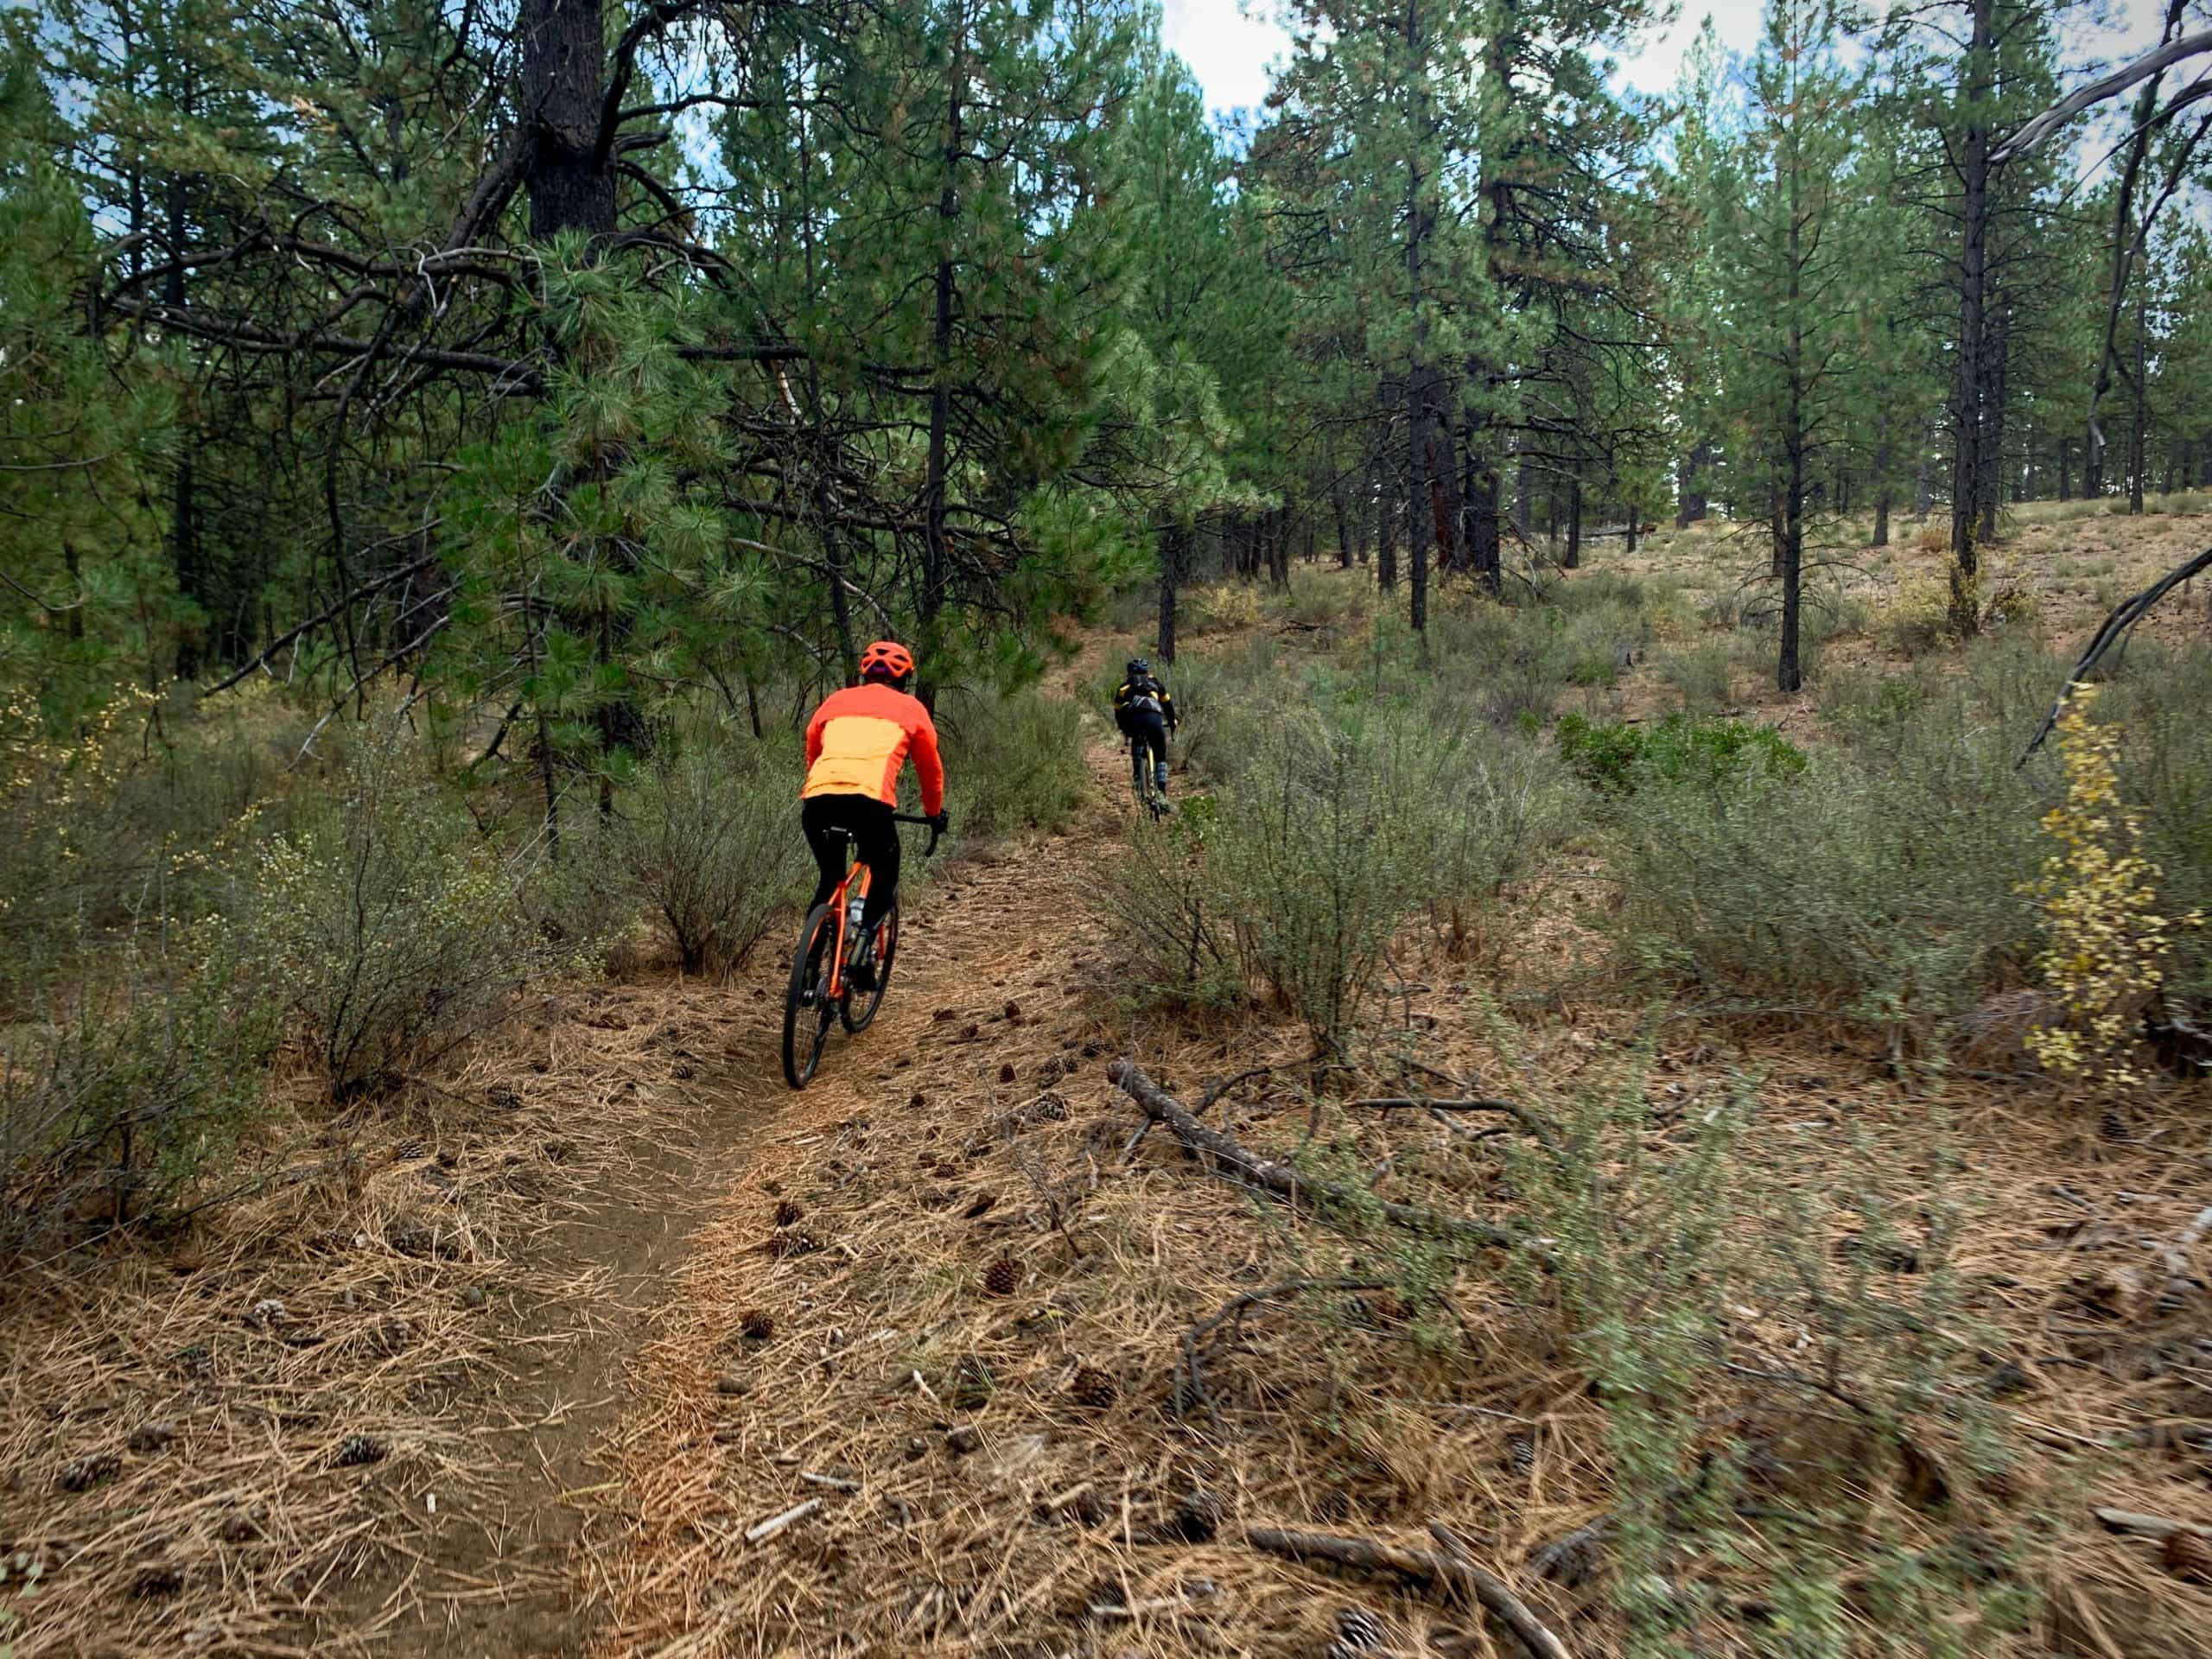 Cyclist on gravel bike riding single track in Deschutes National Forest in Oregon.